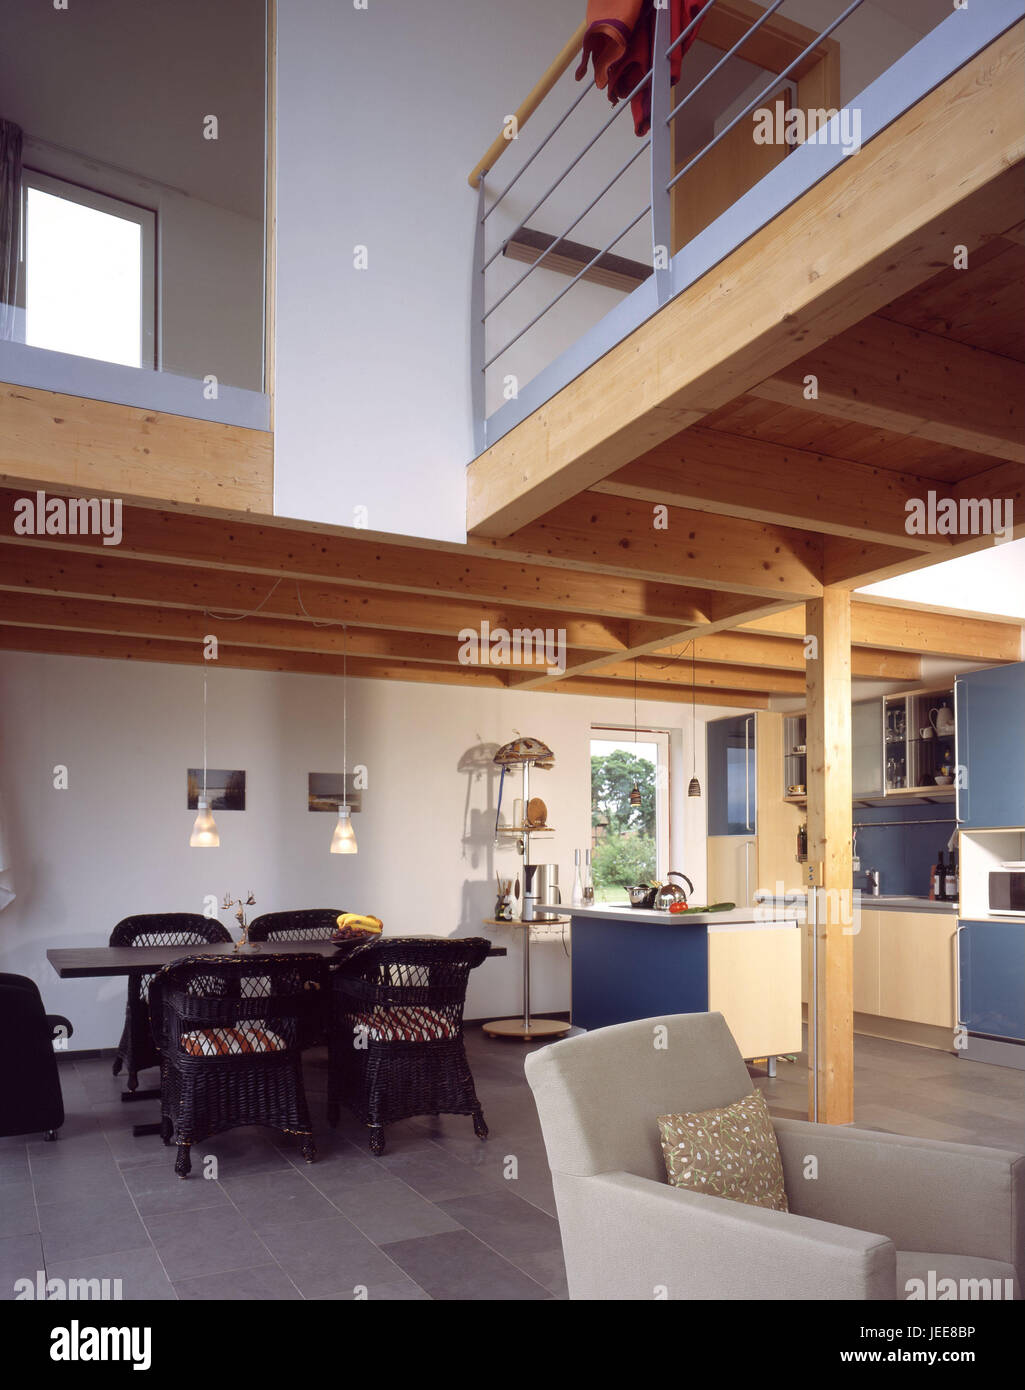 Single Family Dwelling, Cuisine, Dining Room, Dining Table, Upper Floor,  Gallery, Modern, Residential House, Summer Cottage, Holiday Apartment,  Flat, ...